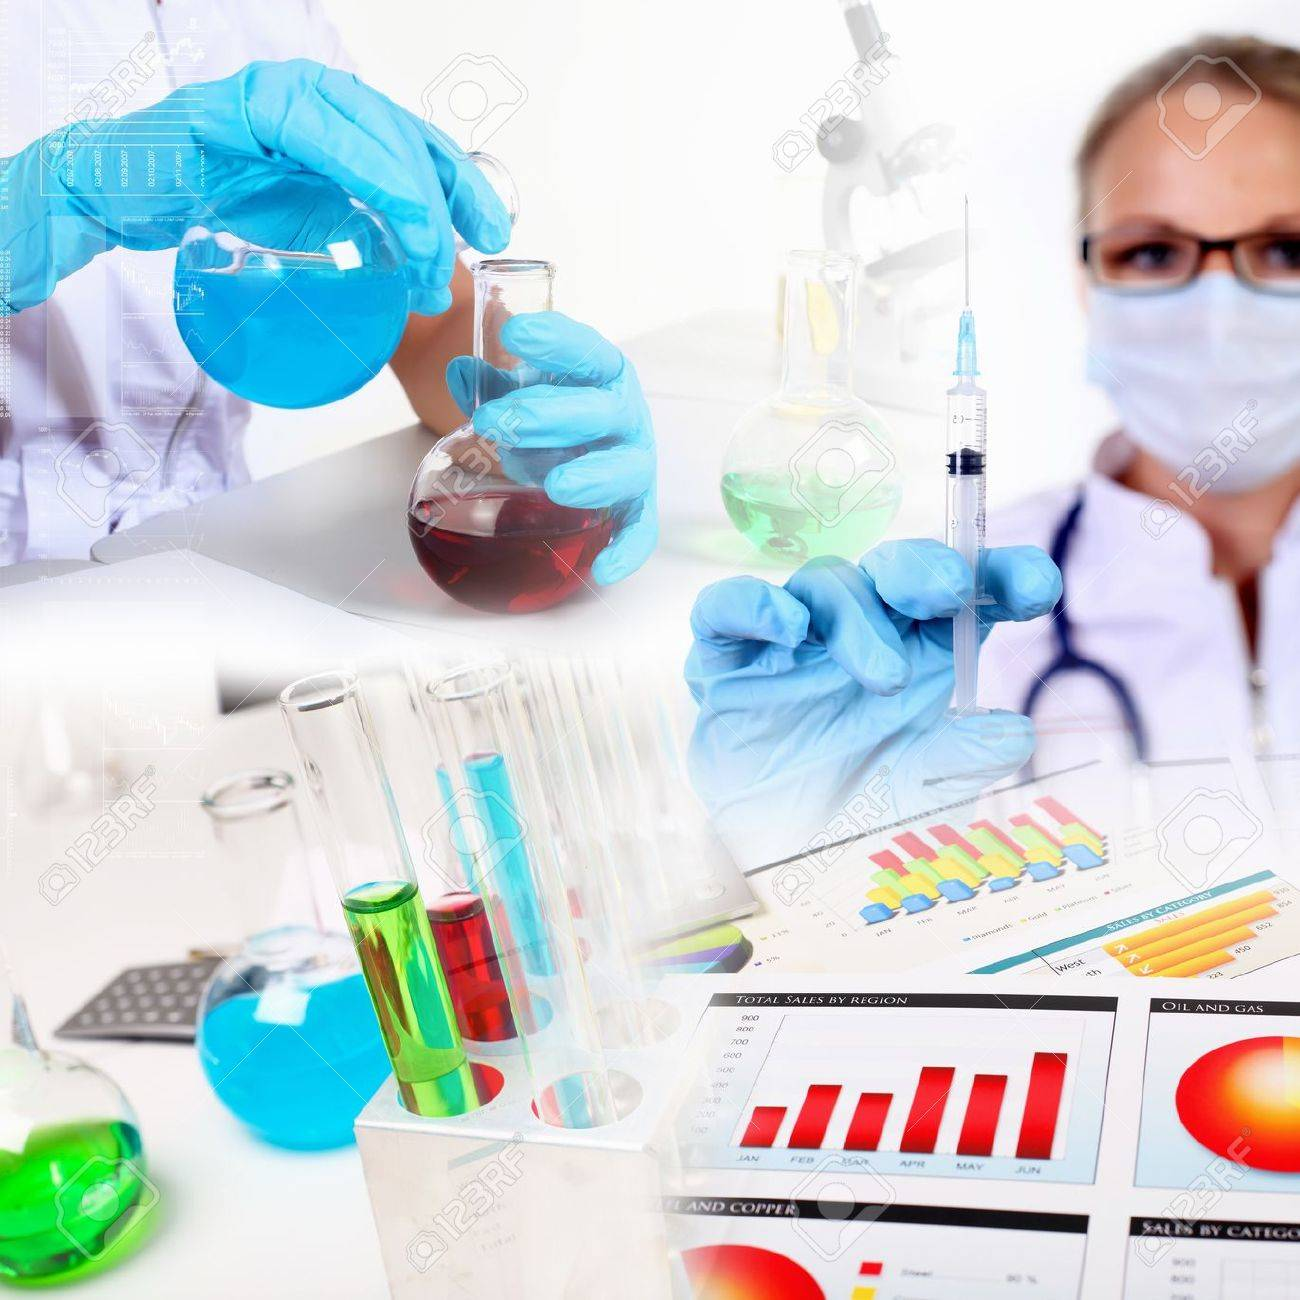 Collage on science with young woman and laborotary equipment Stock Photo - 13382948